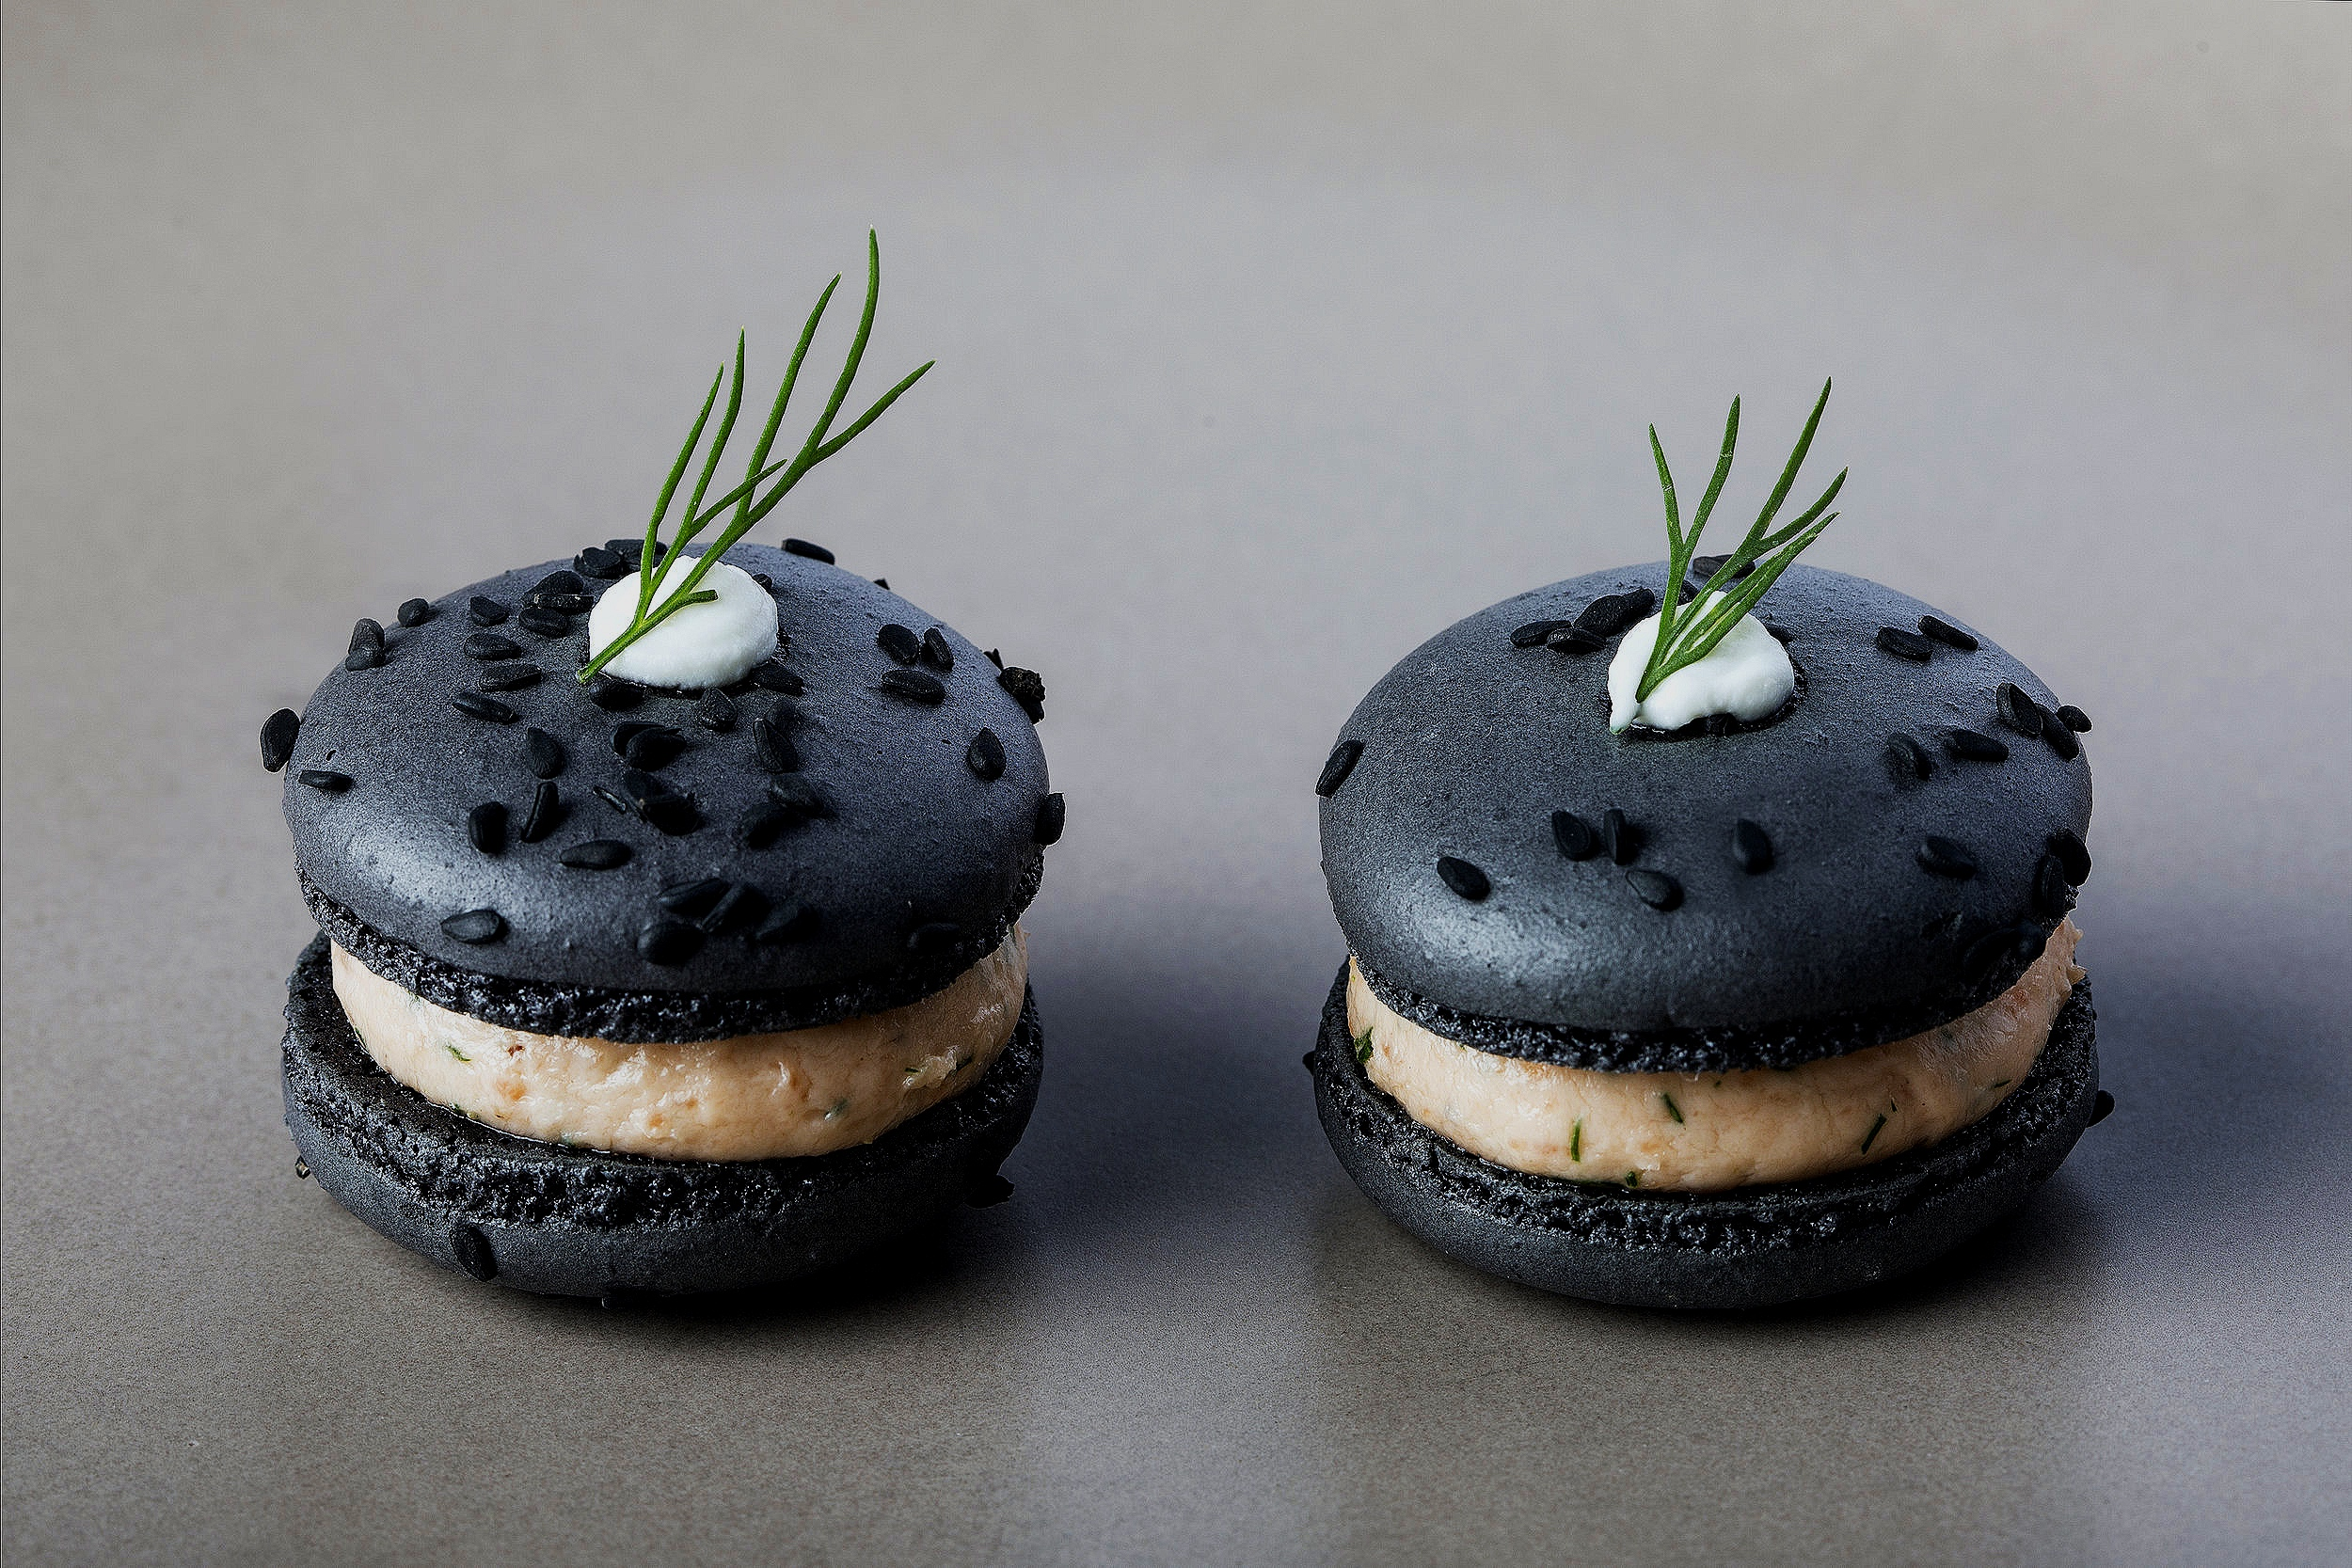 Savory macaron with smoked salmon, cream cheese, dill, and black sesame